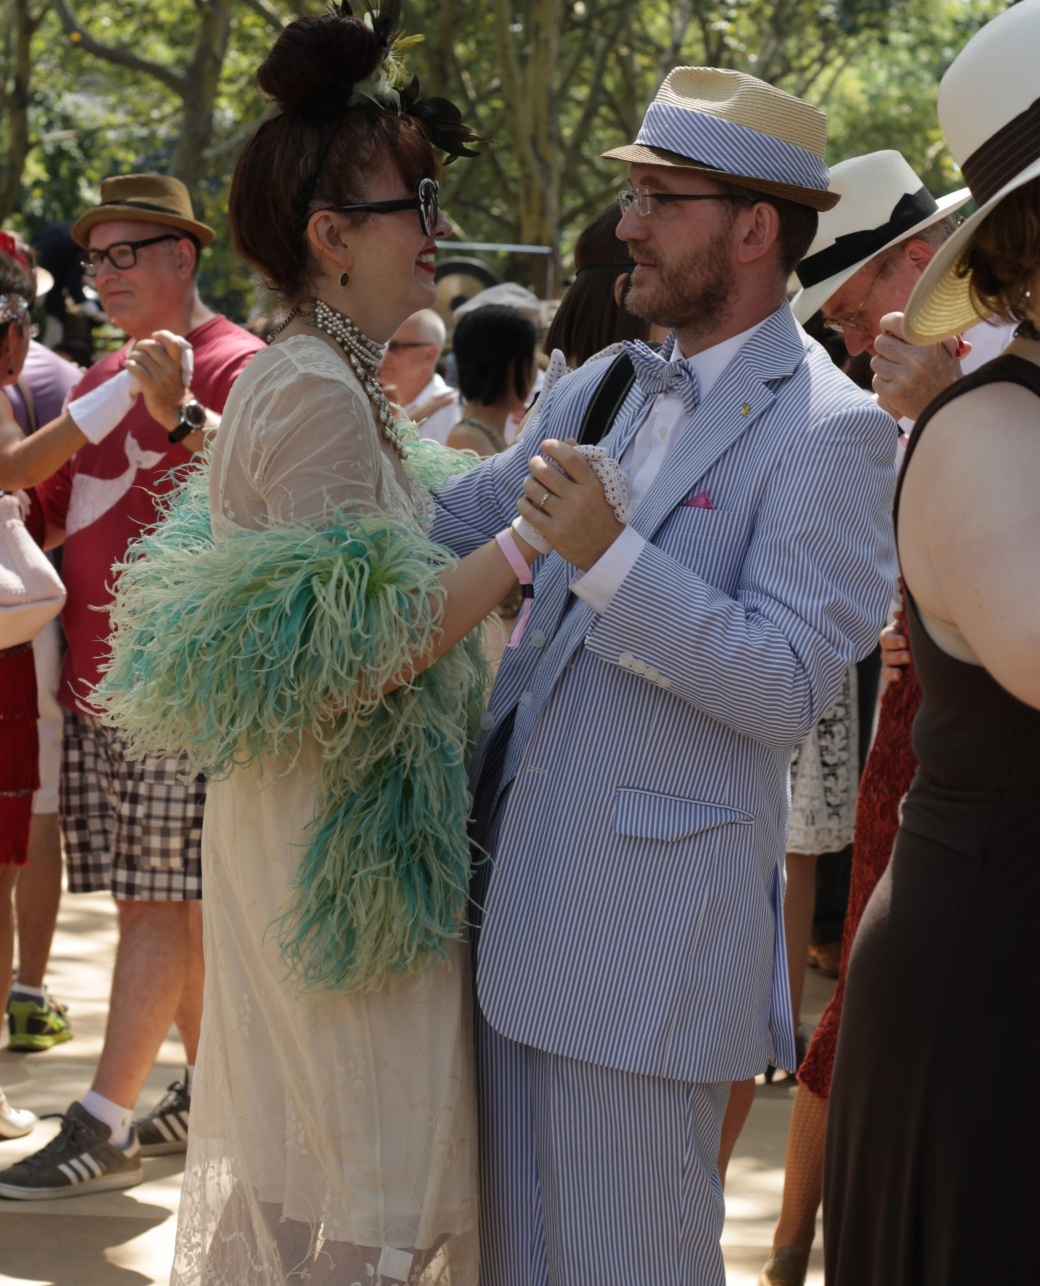 new york city governors island jazz age lawn party august 17 2014 33